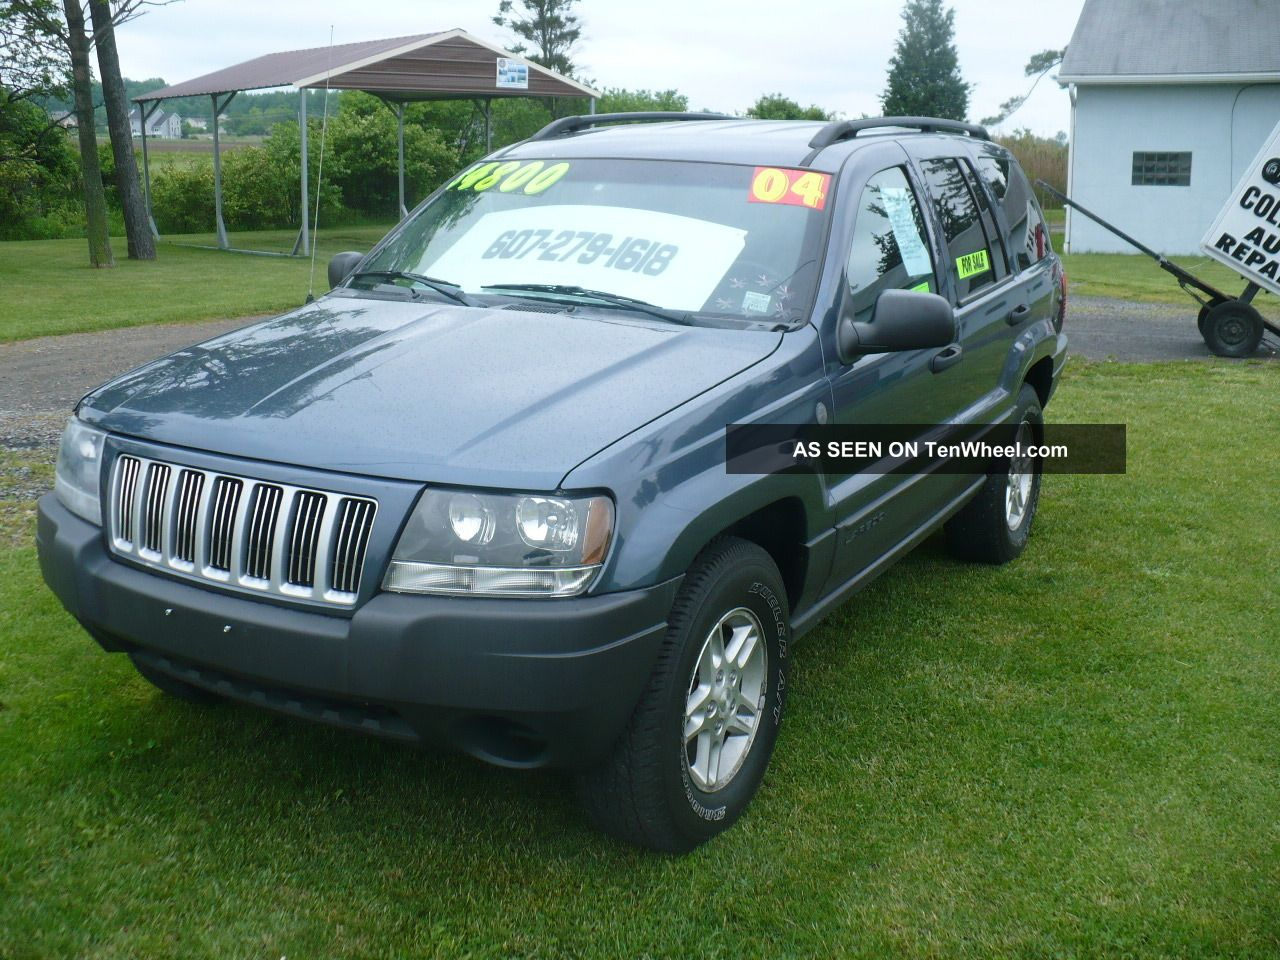 2004 jeep grand cherokee laredo 4x4 loaded all power cd player no rust. Black Bedroom Furniture Sets. Home Design Ideas